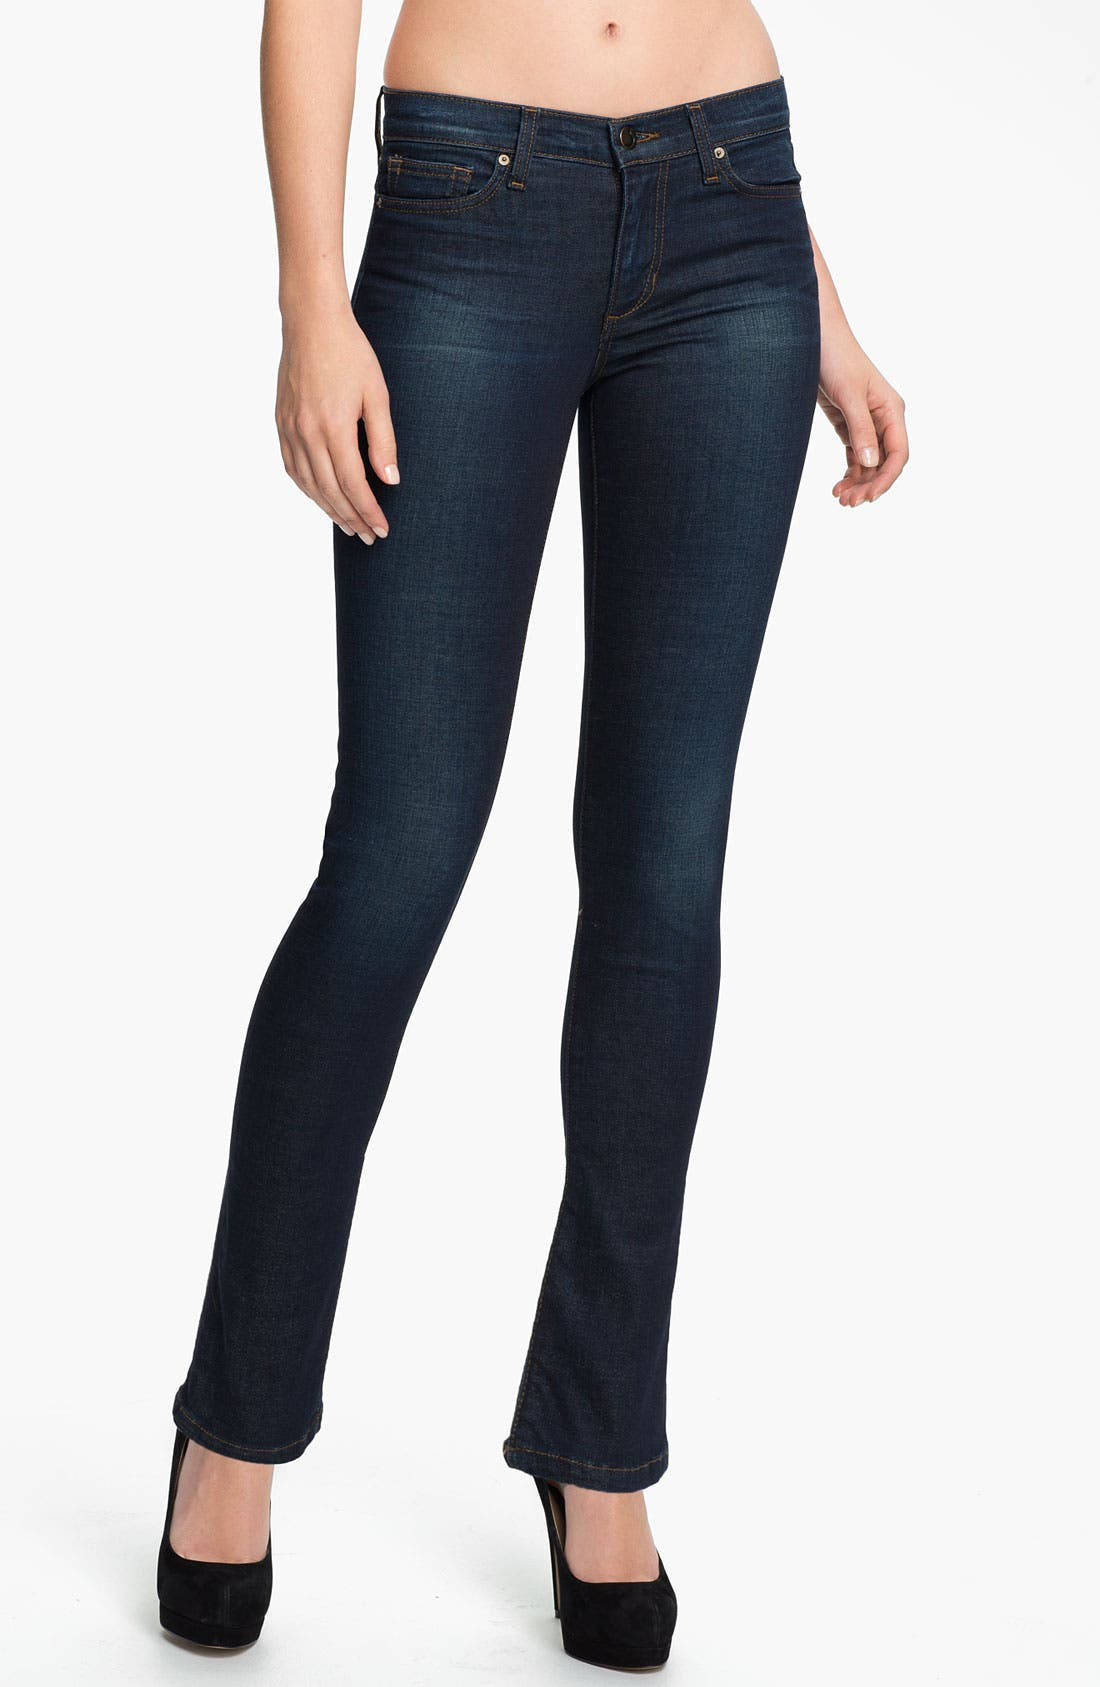 Alternate Image 1 Selected - Joe's Straight Leg Stretch Jeans (Arielle) (Petite)